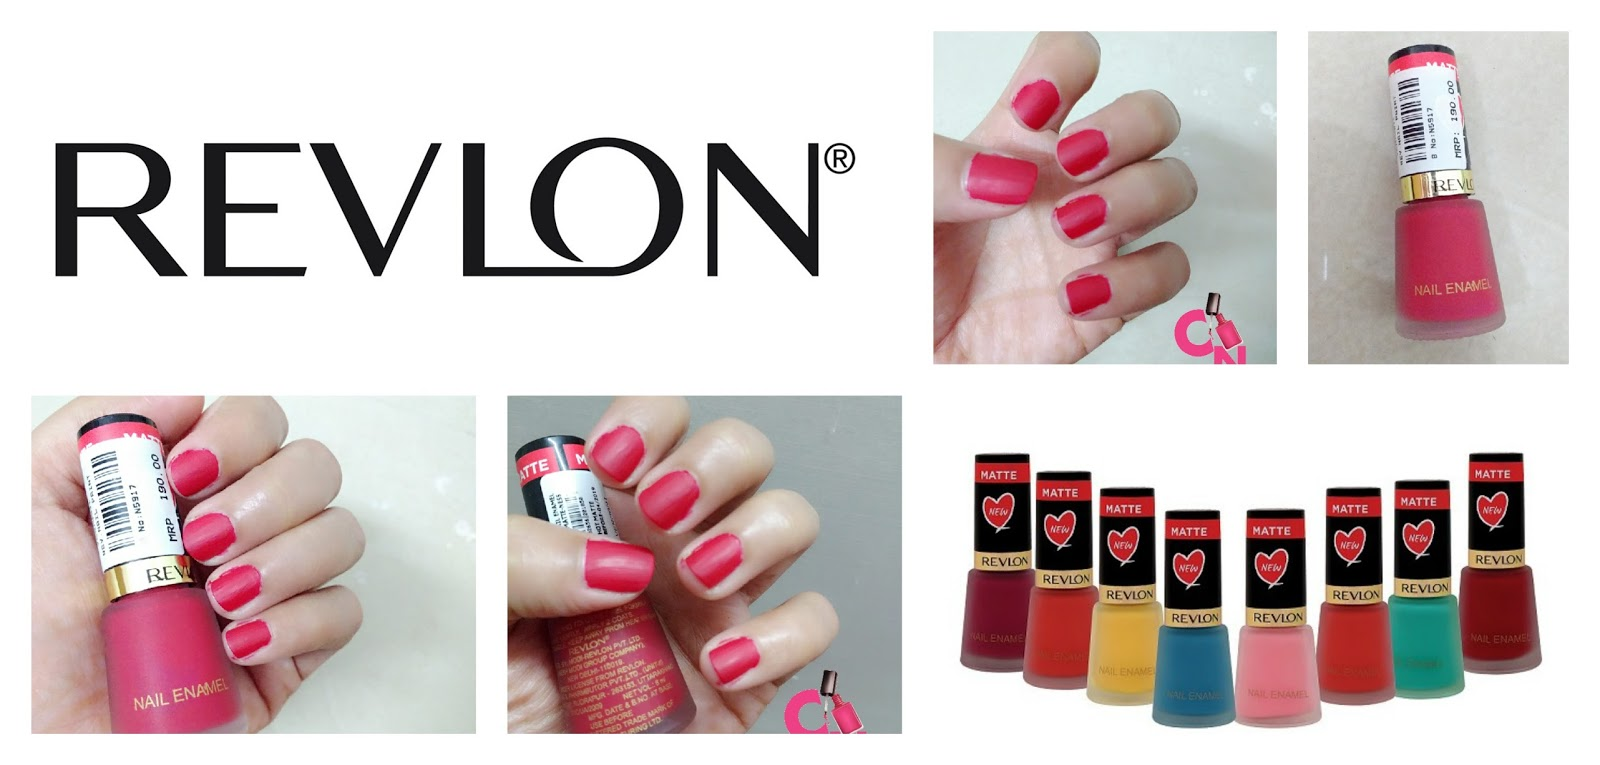 Revlon Matte Nail Polish Collection- Hot Matte: Review & Swatches